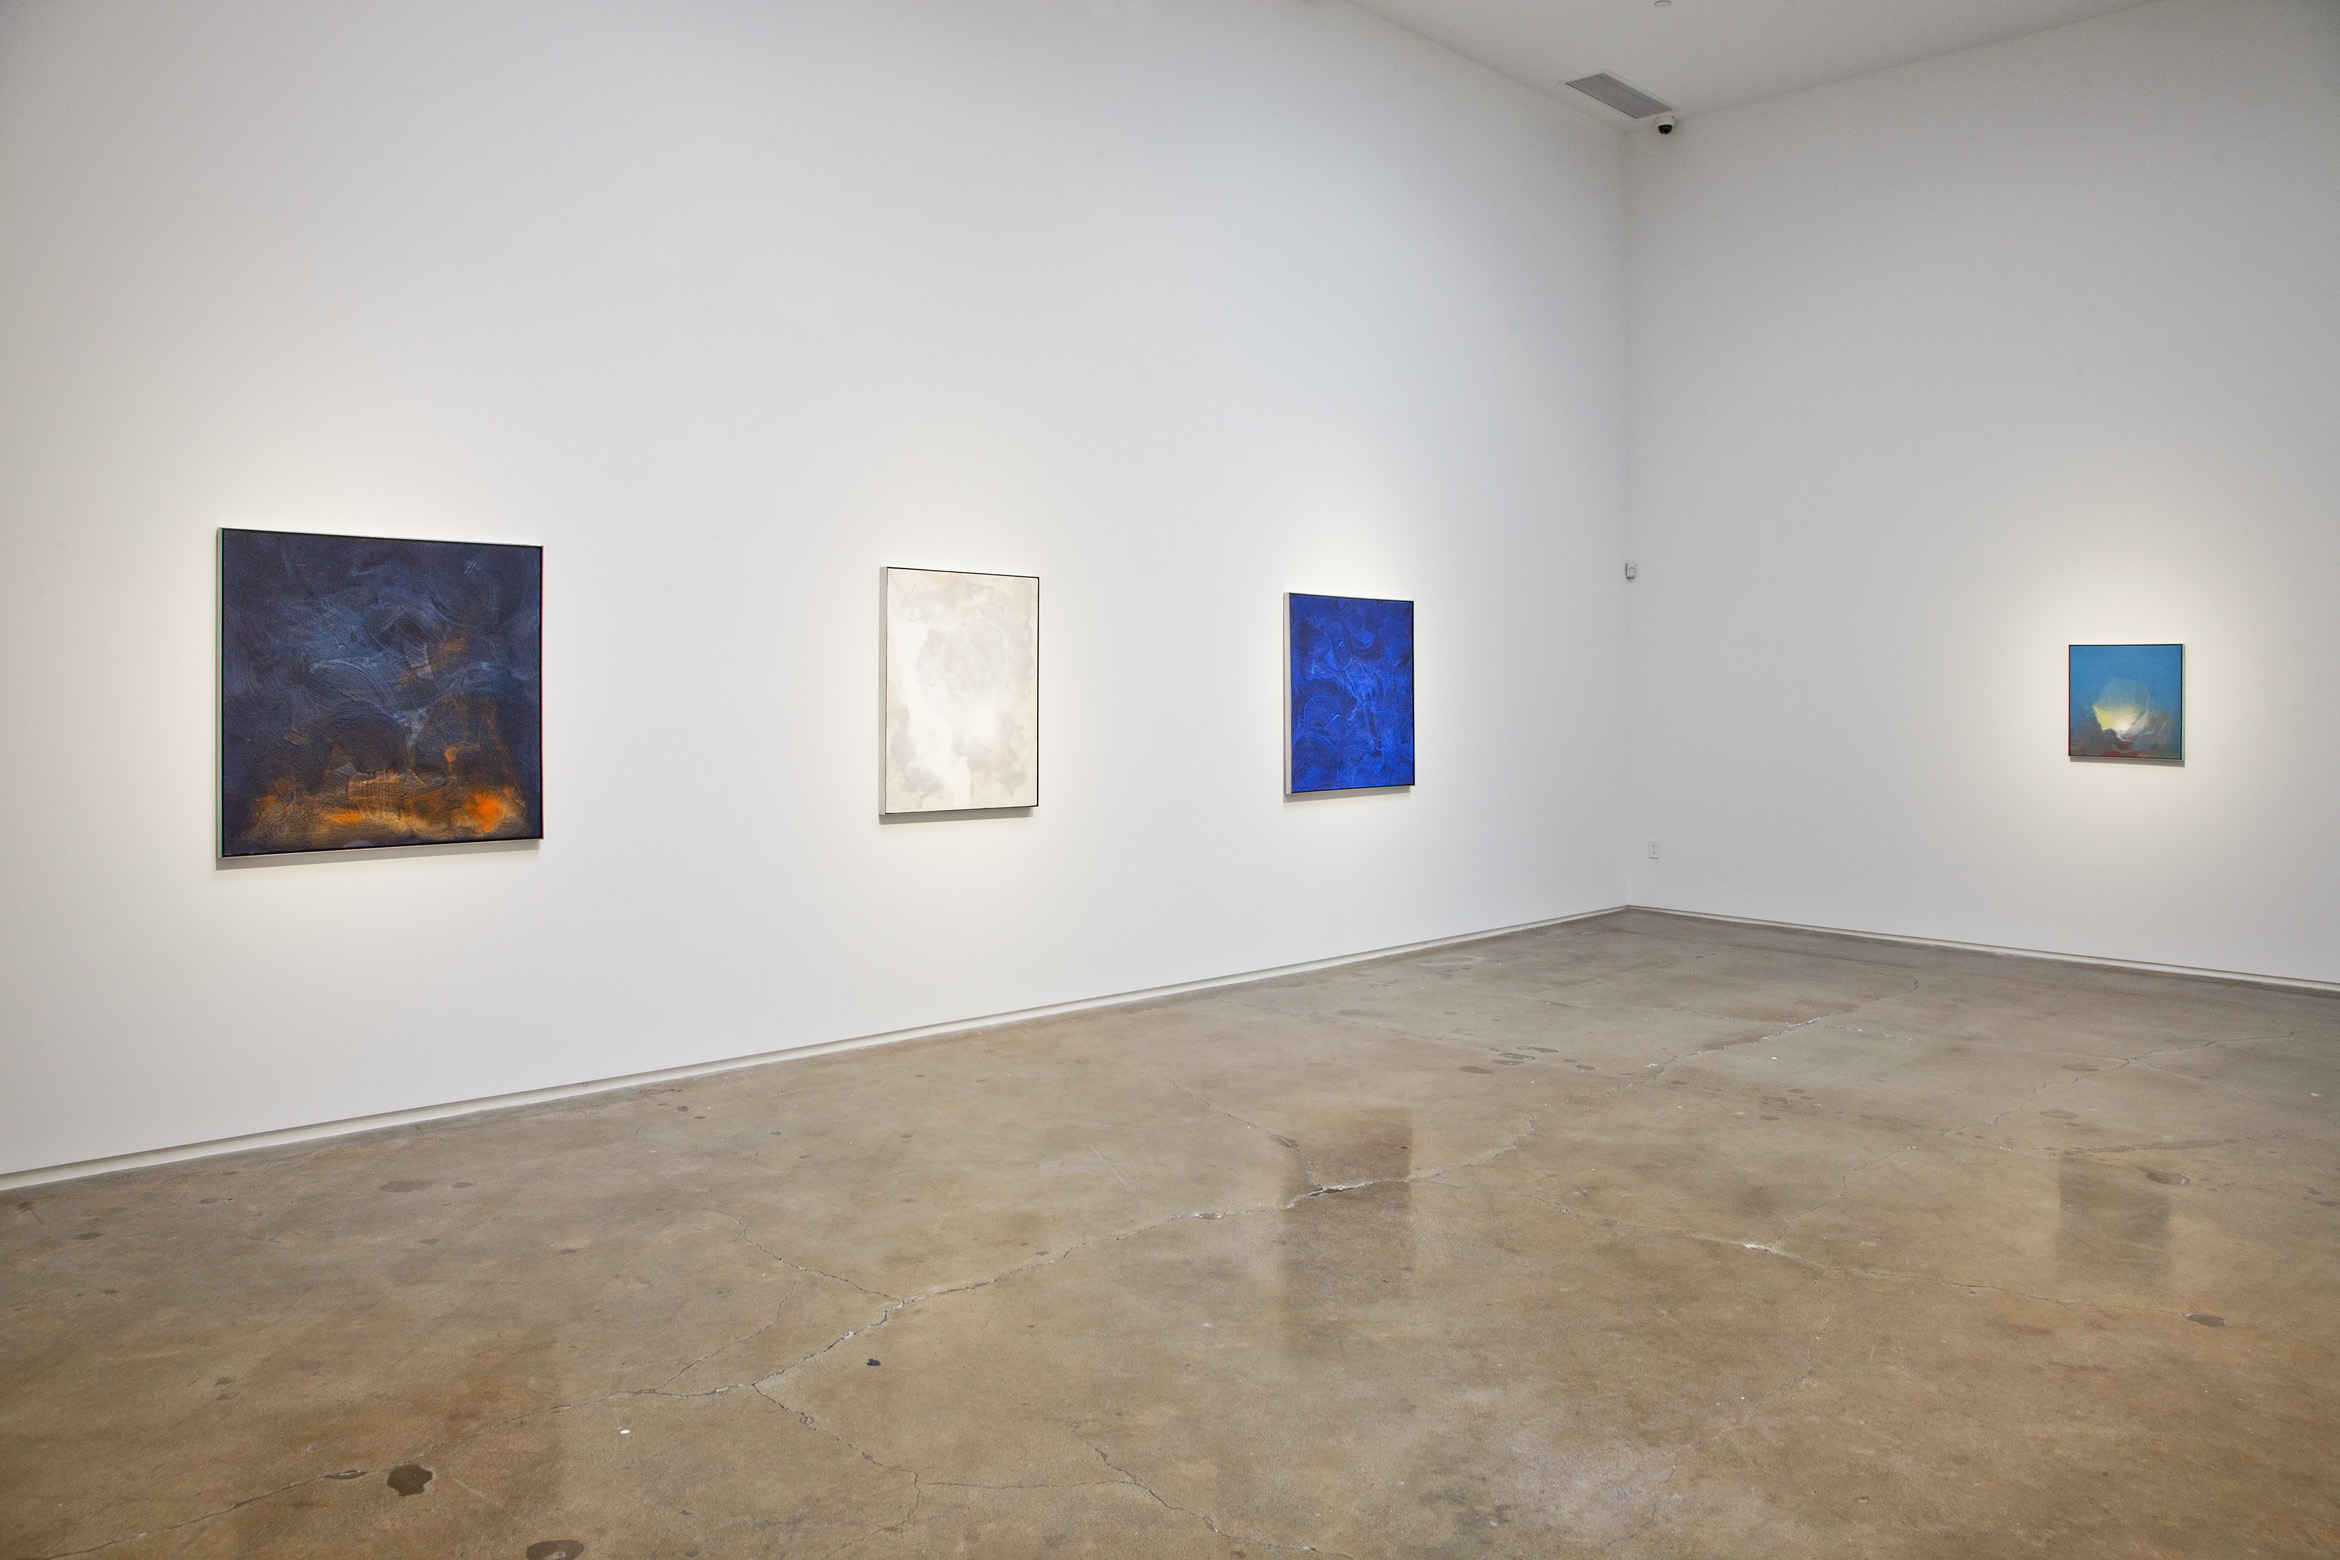 Joe Goode, Old Ideas with New Solutions, March 23 - May 13, 2017